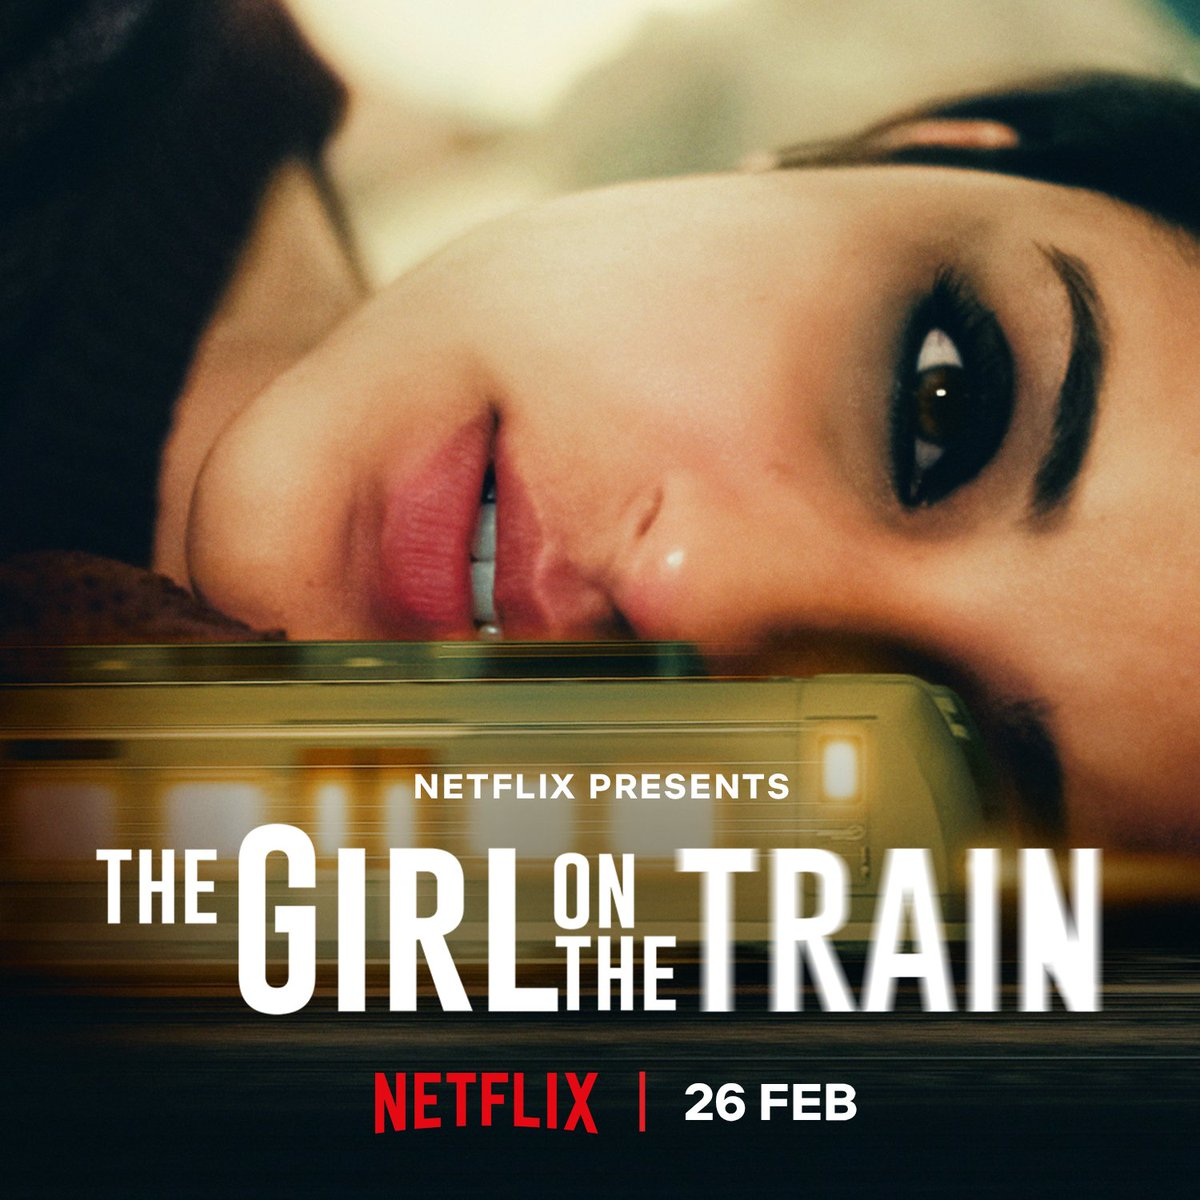 PREMIERES ON NETFLIX... #TheGirlOnTheTrain - initially slated for release in cinemas - premieres 26 Feb 2021 on #Netflix... Stars #ParineetiChopra, #AditiRaoHydari, #KirtiKulhari and #AvinashTiwary... Directed by Ribhu Dasgupta... Produced by Reliance Entertainment.